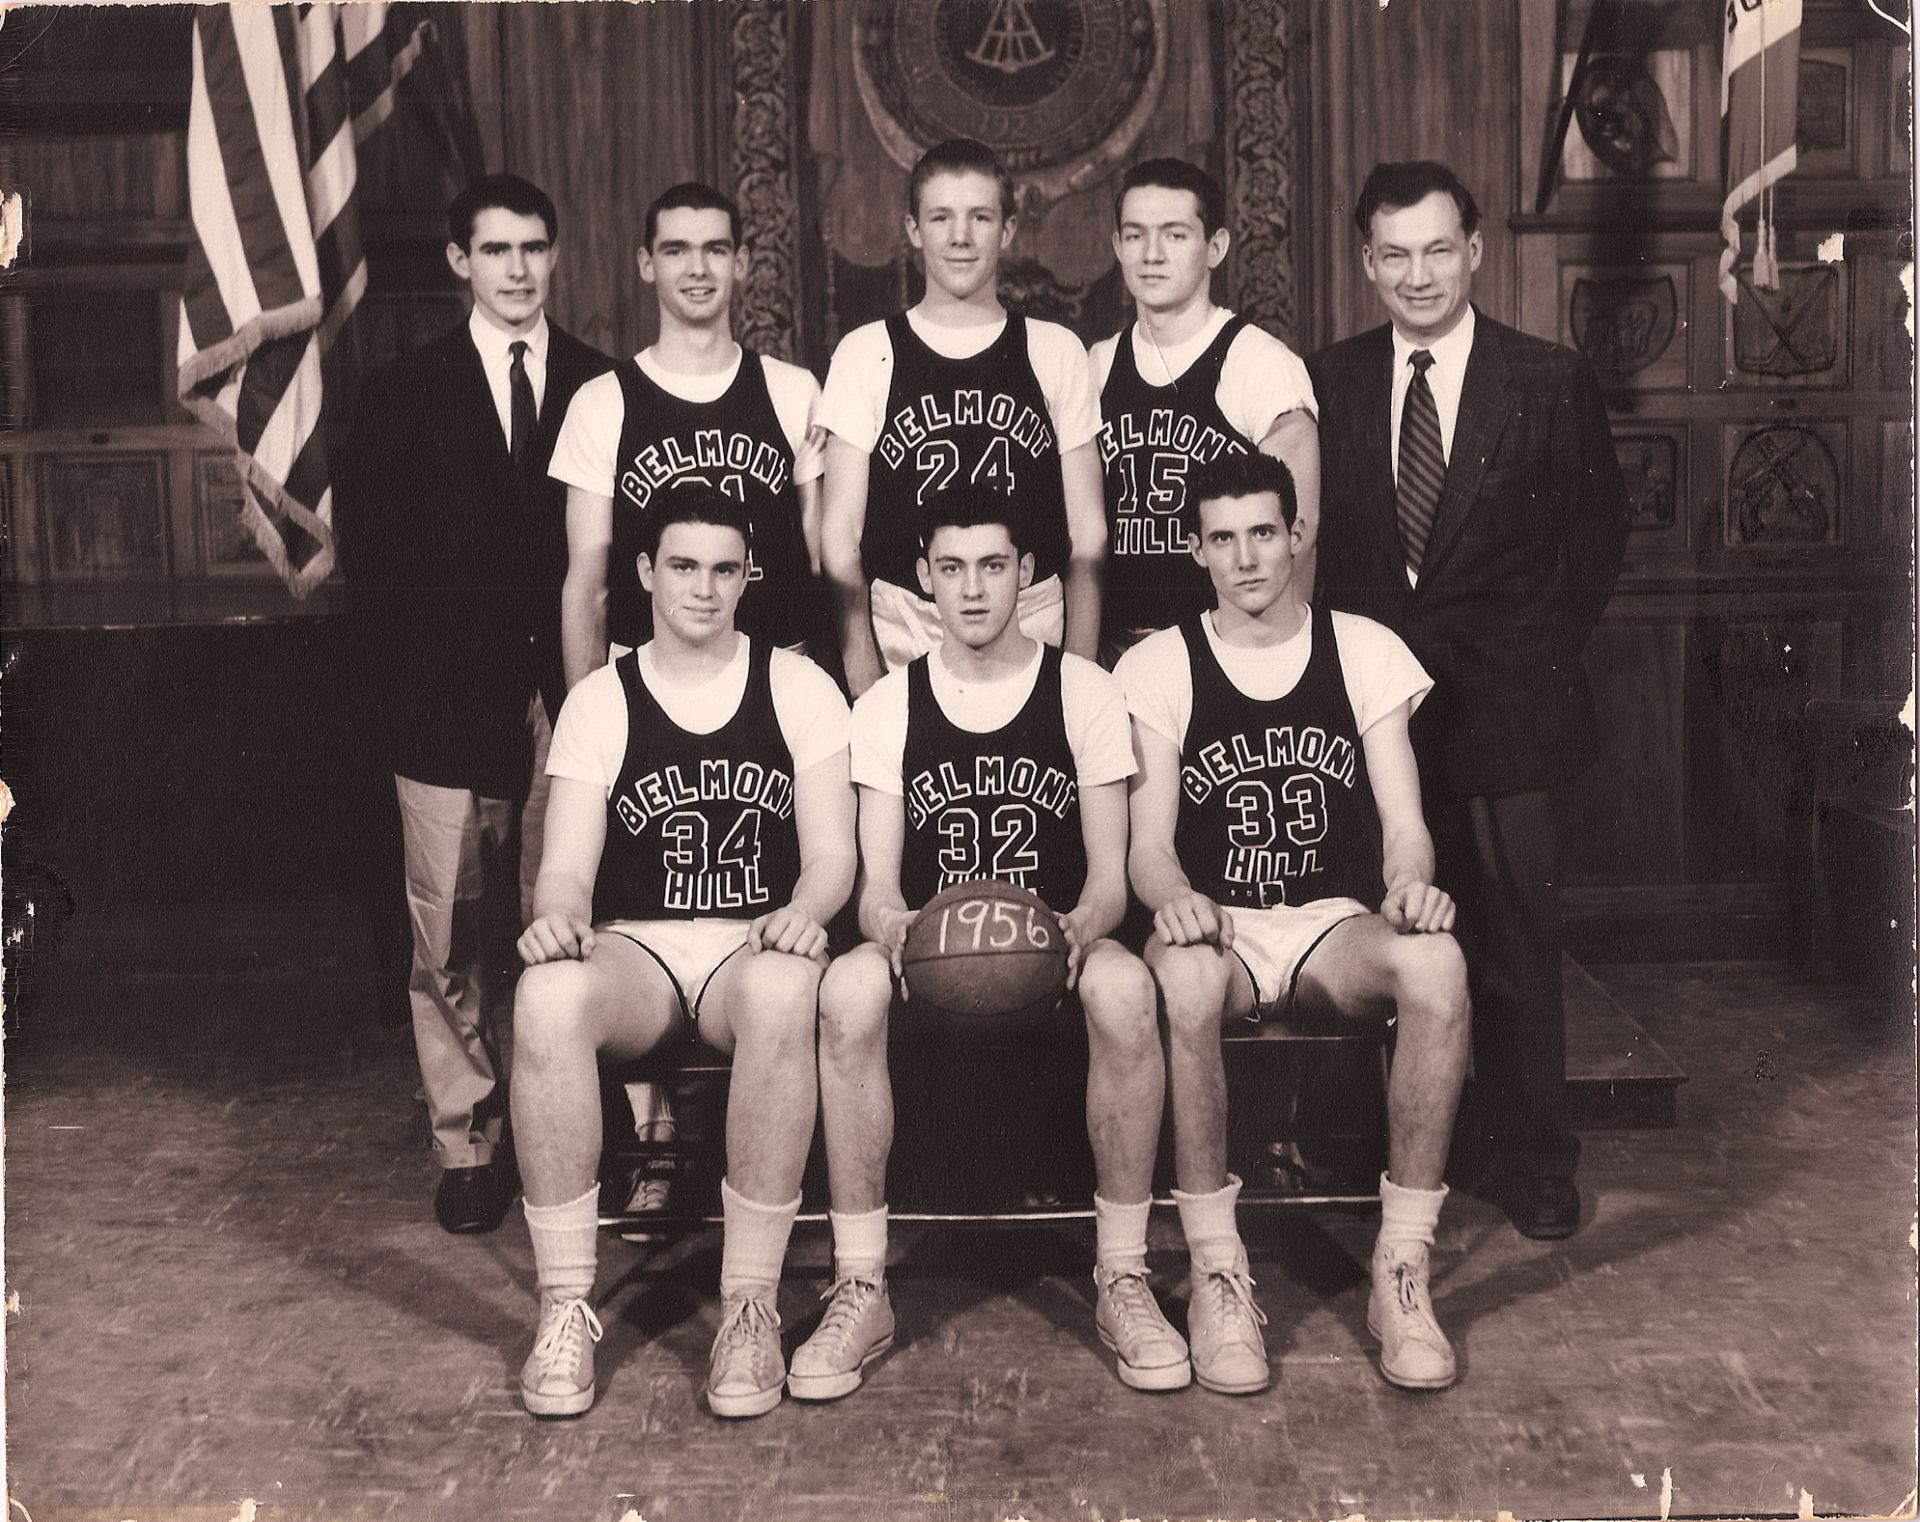 Front Row: Watters, Captain Zayotti, Davidson Back Row: O'Leary, P. O'Leary, R. Woodbury, J. Wilcox, Mr. Croke